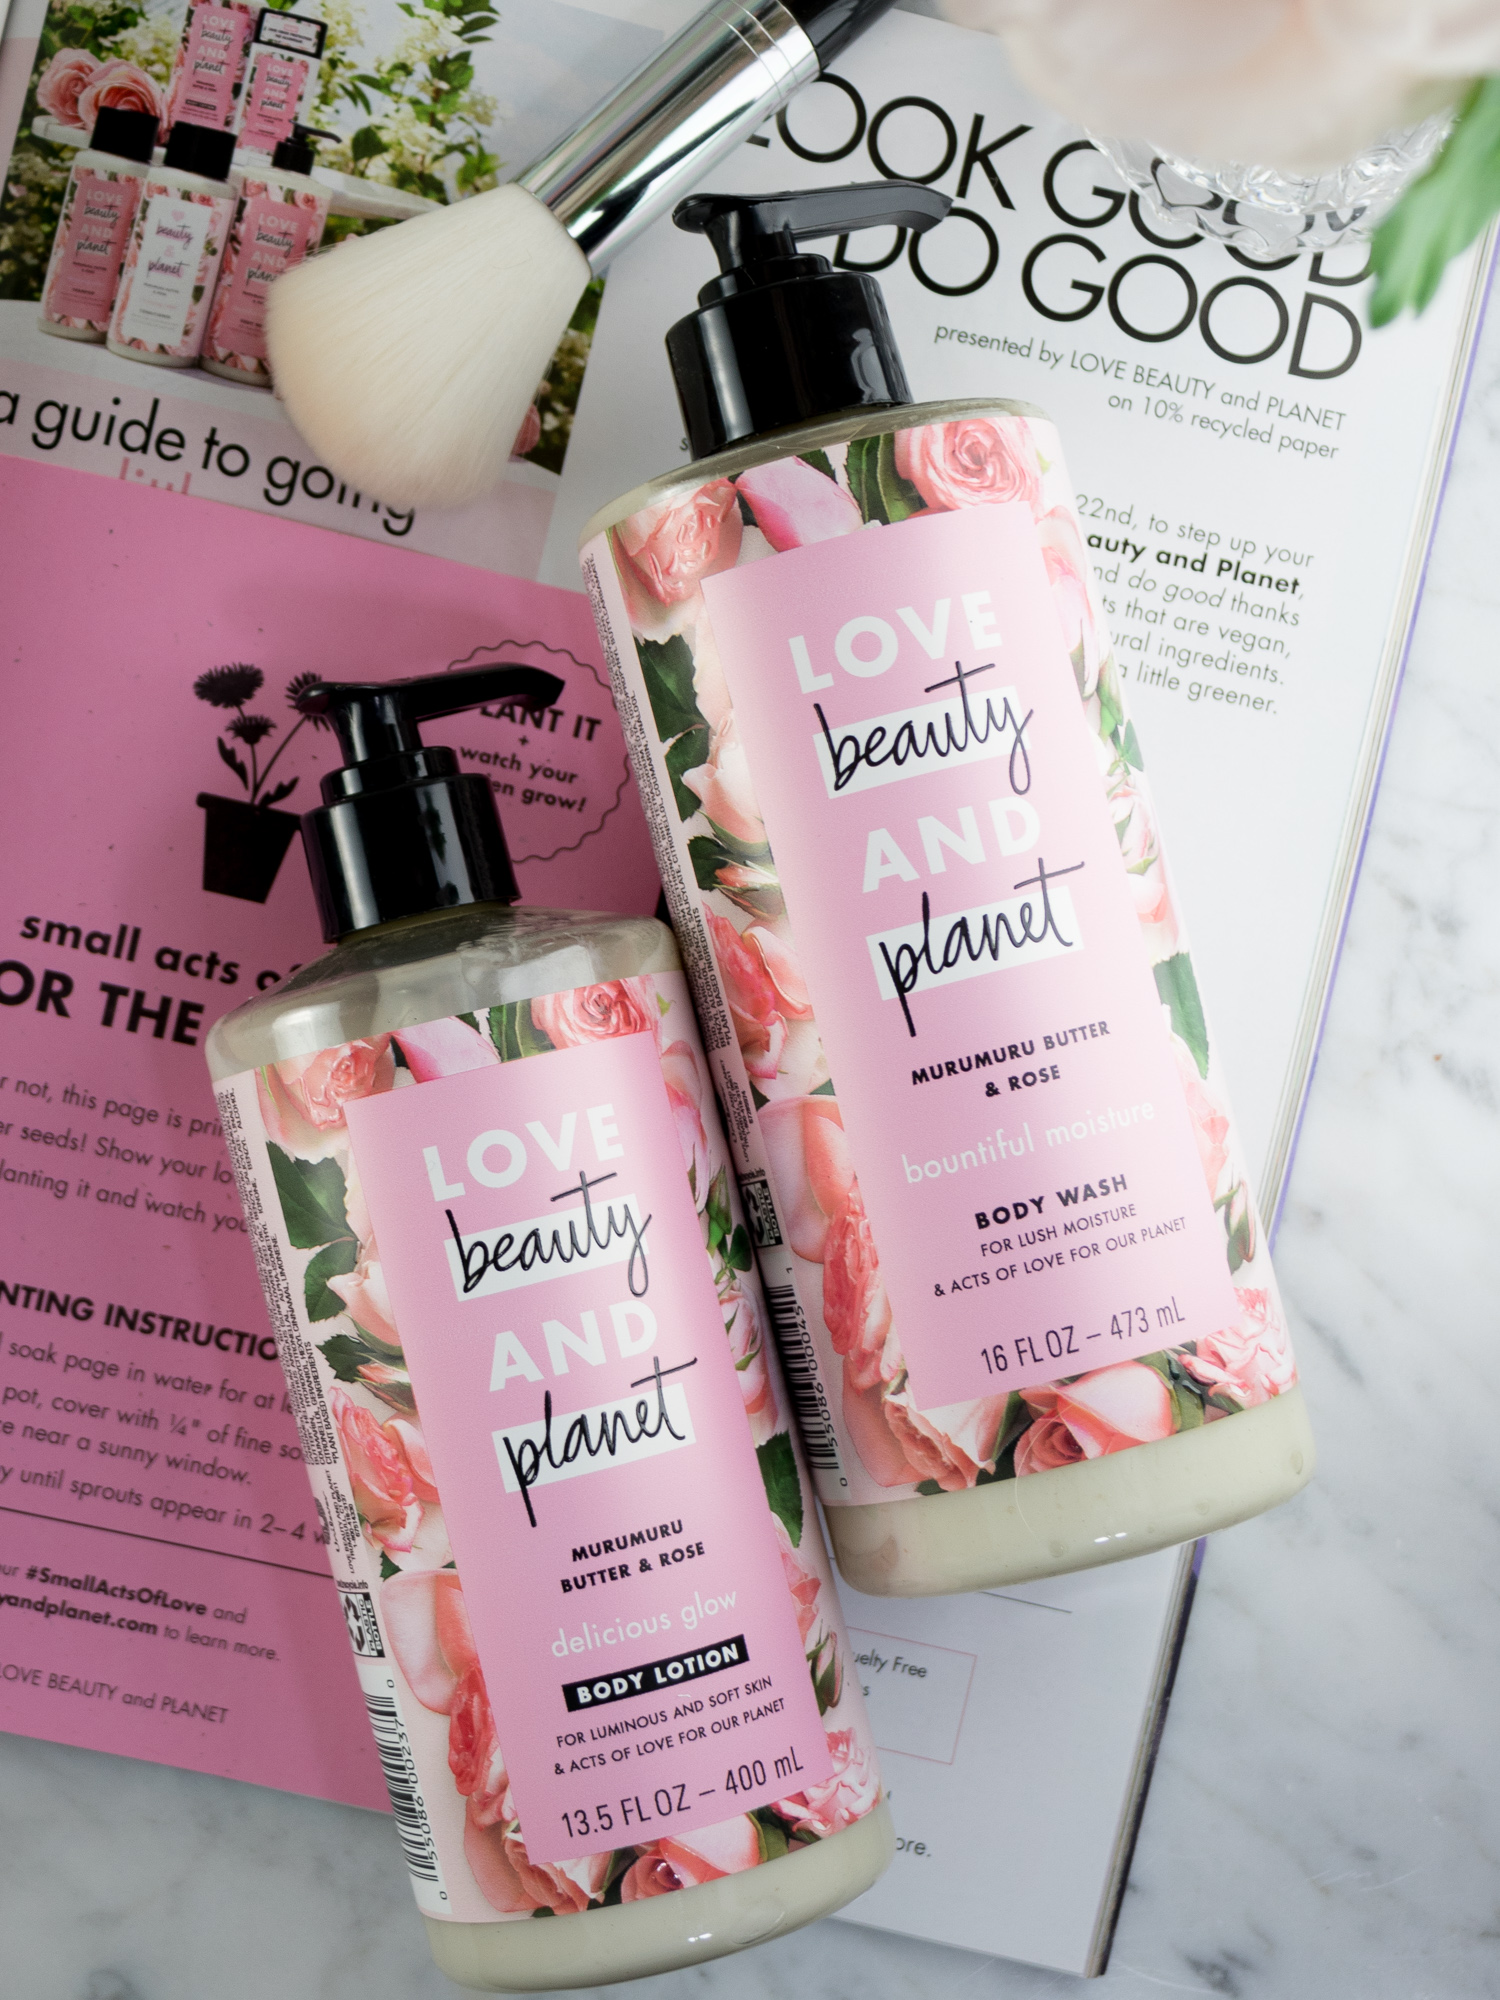 Love Beauty and Planet Bath and Body Products